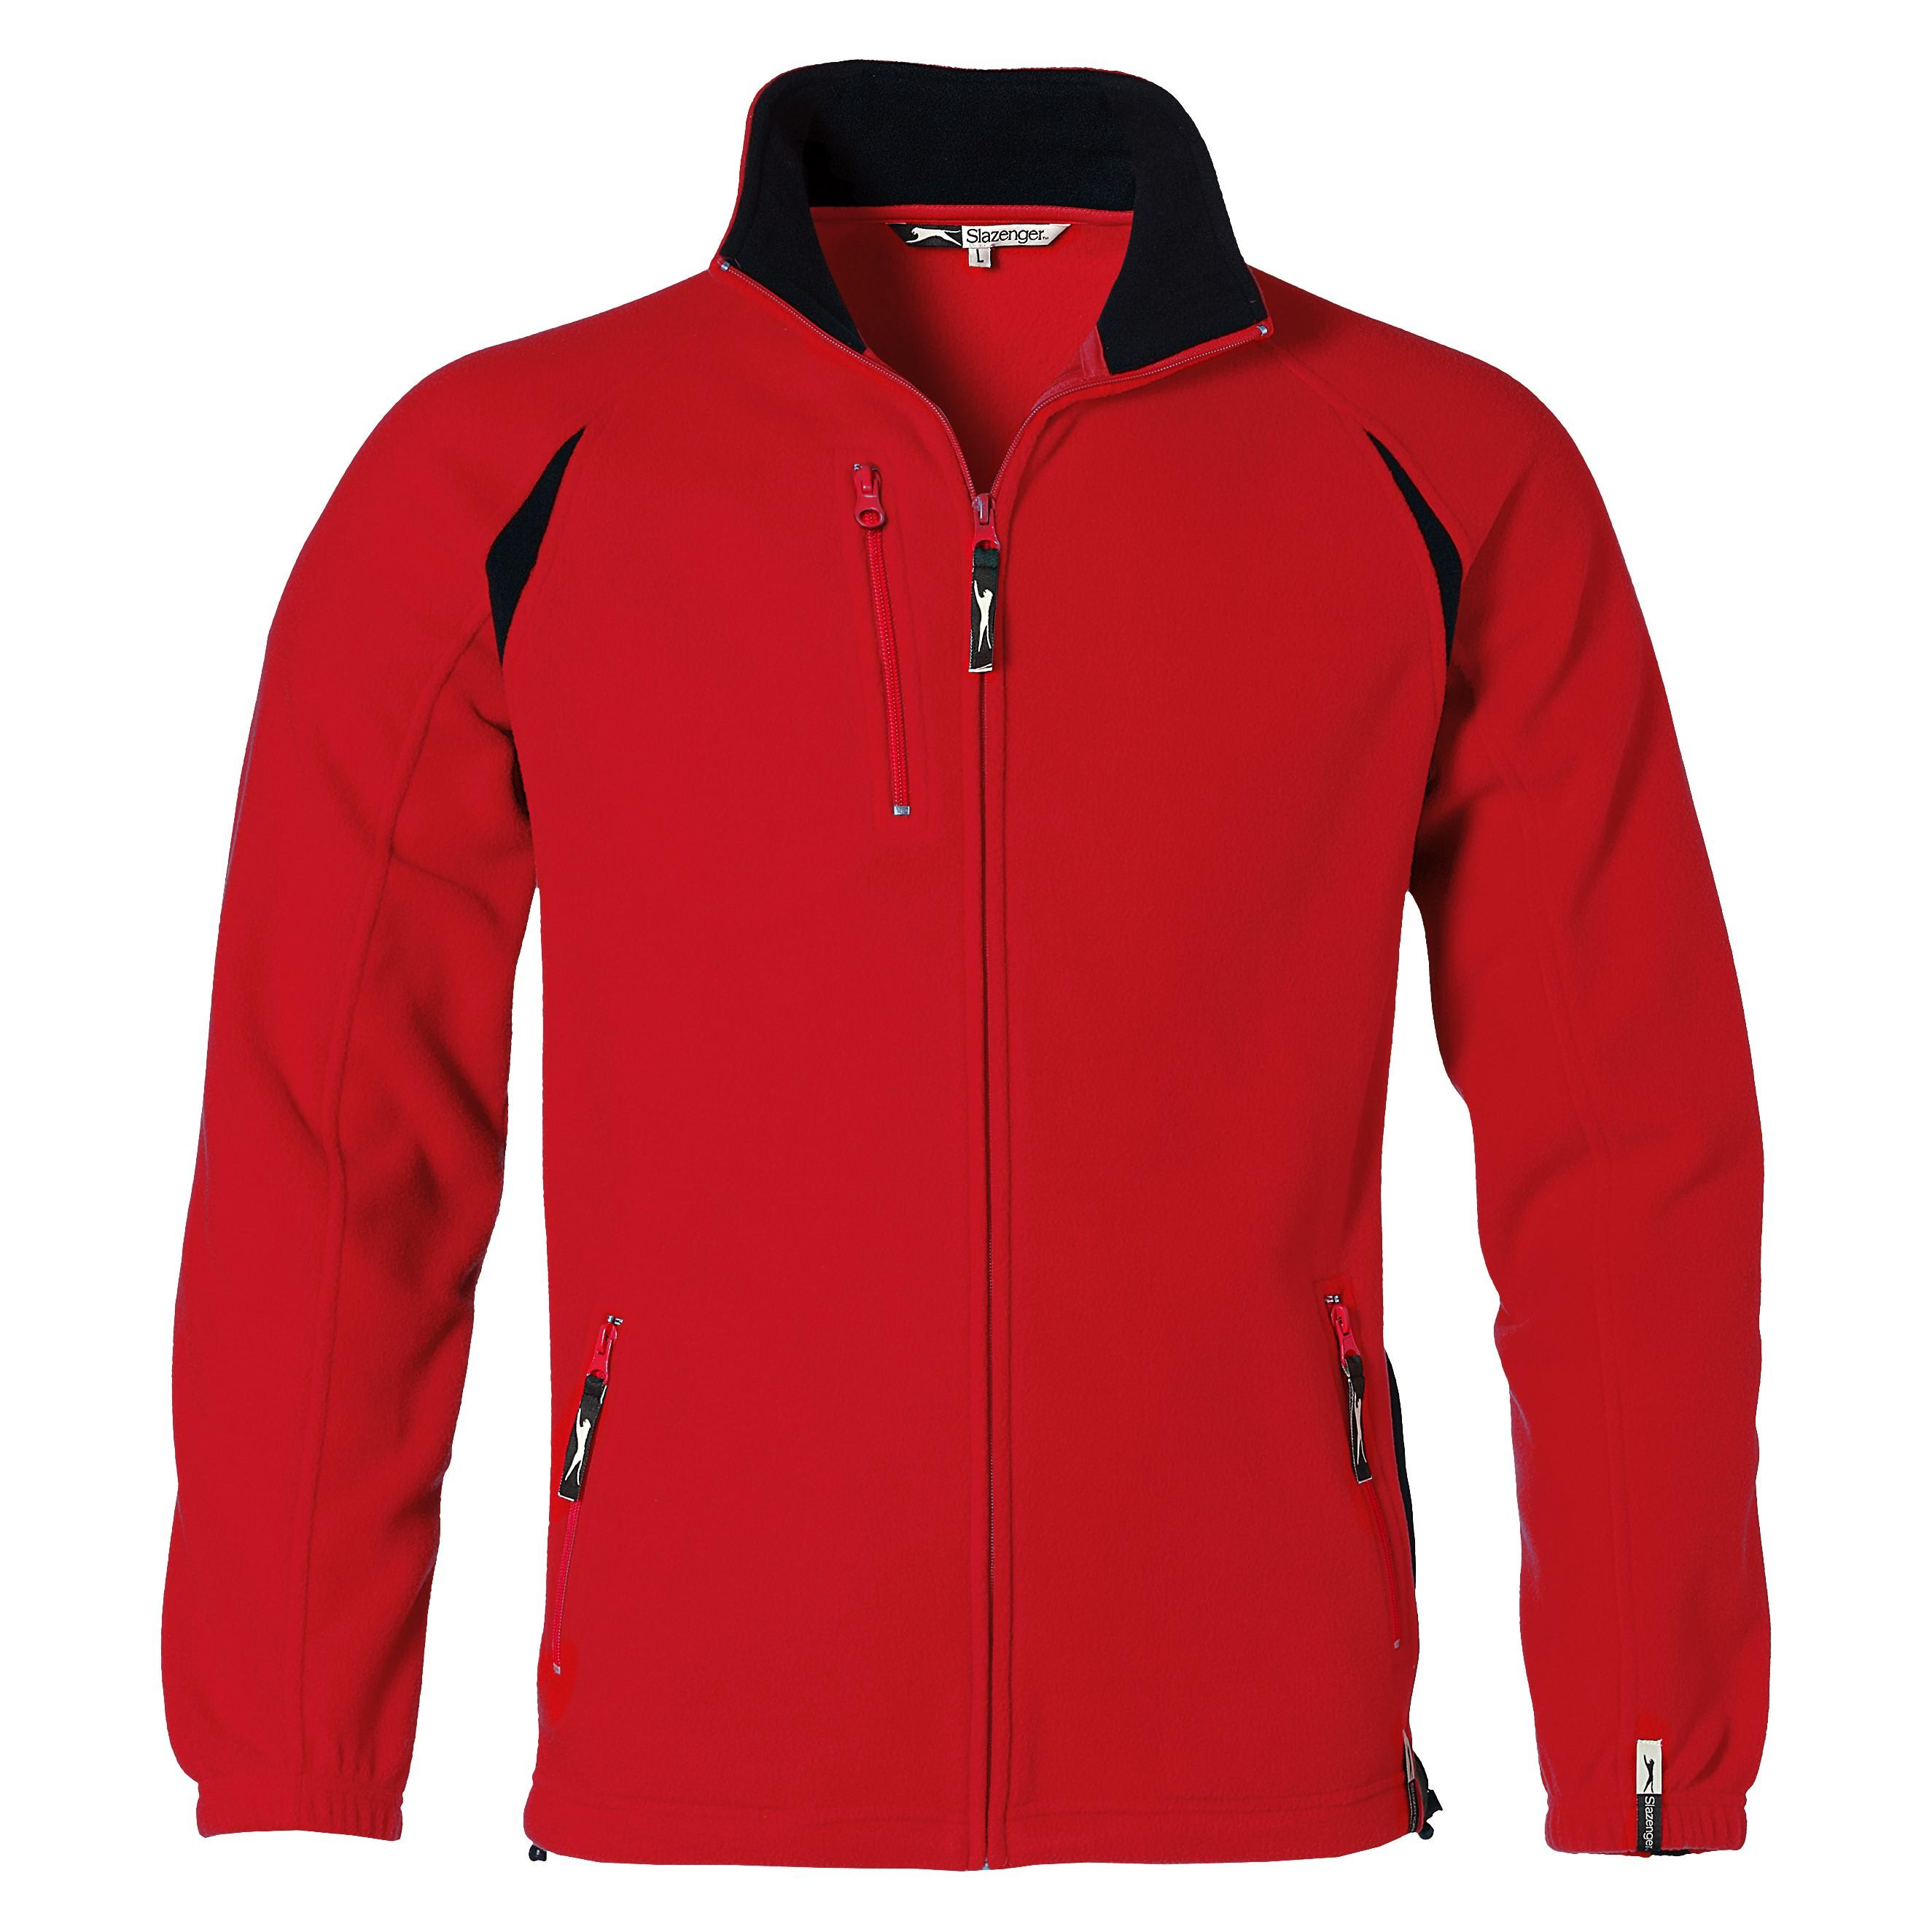 Mens Apex Micro Fleece Jacket - Red Only